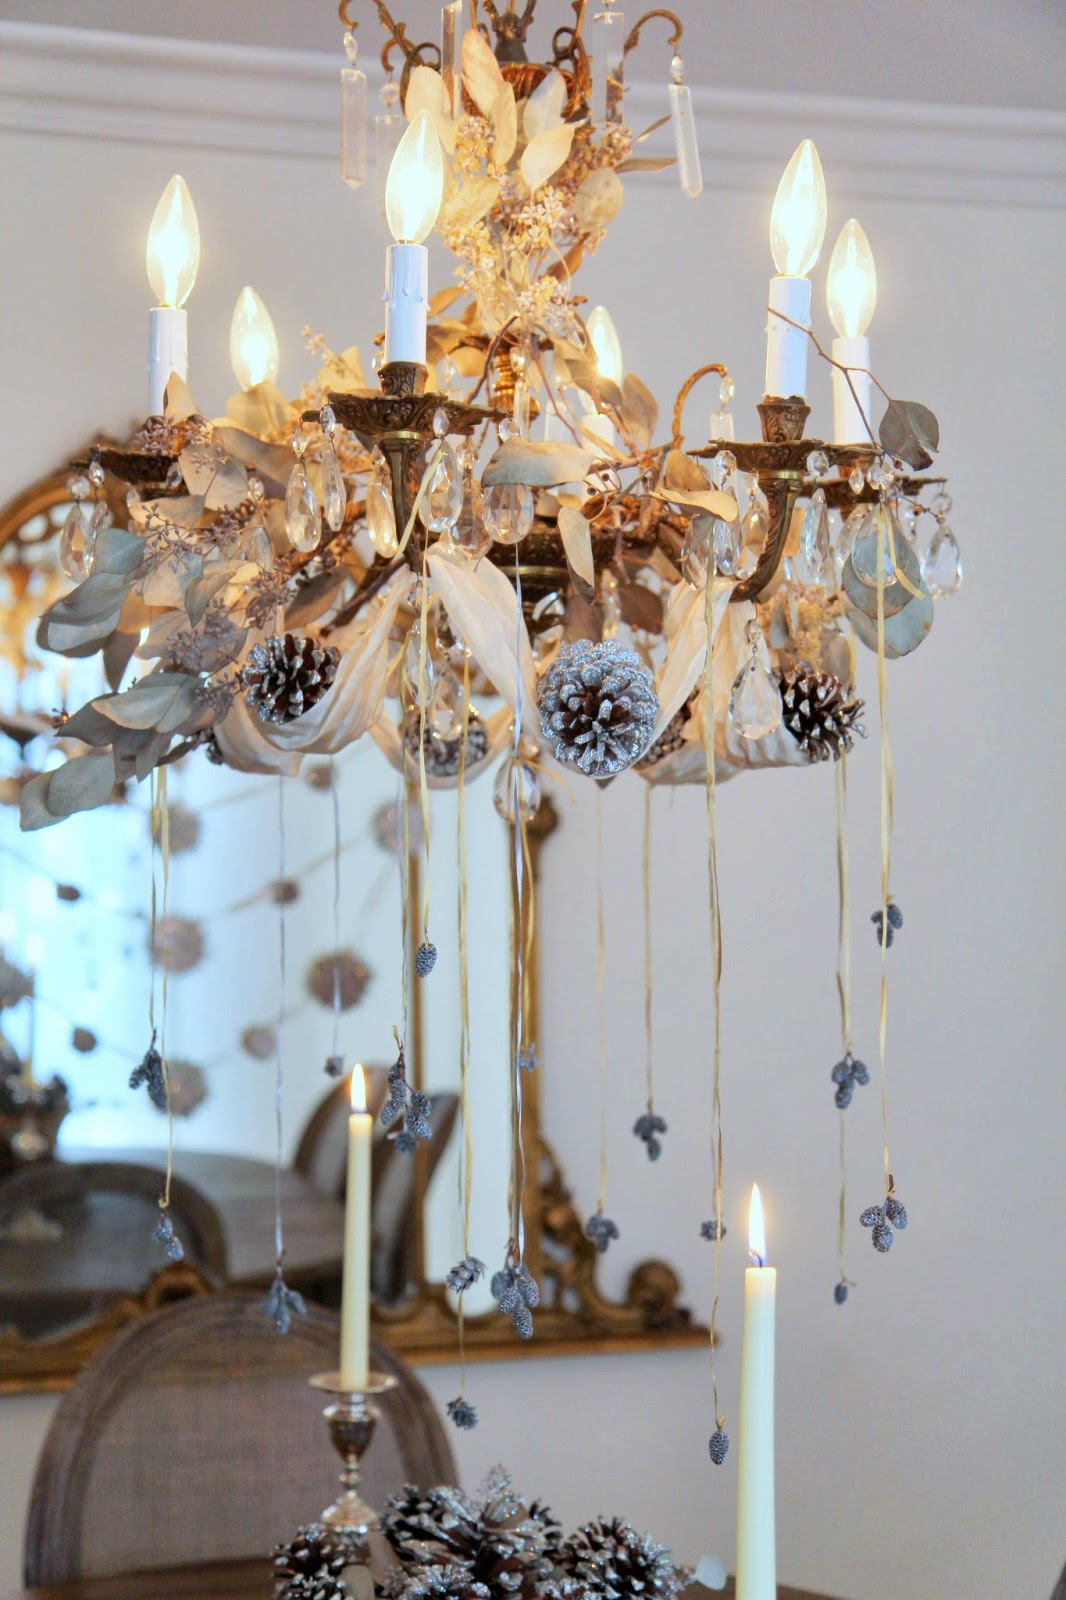 Chandelier-Decorated-for-Christmas